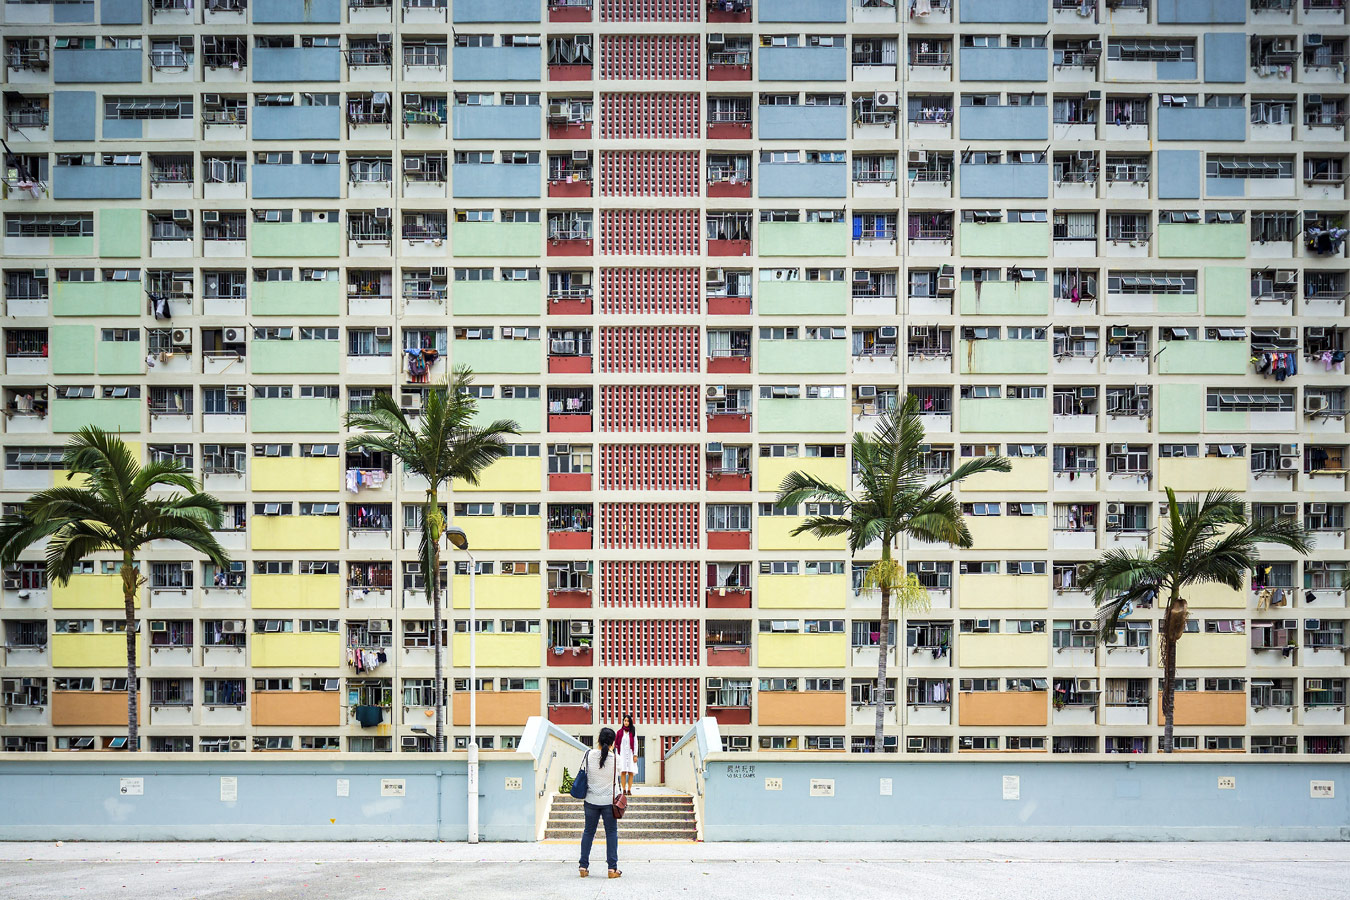 Photographer: Fabio Mantovani, Project: Choi Hung Estate in Hong Kong, Architectural Photography Awards